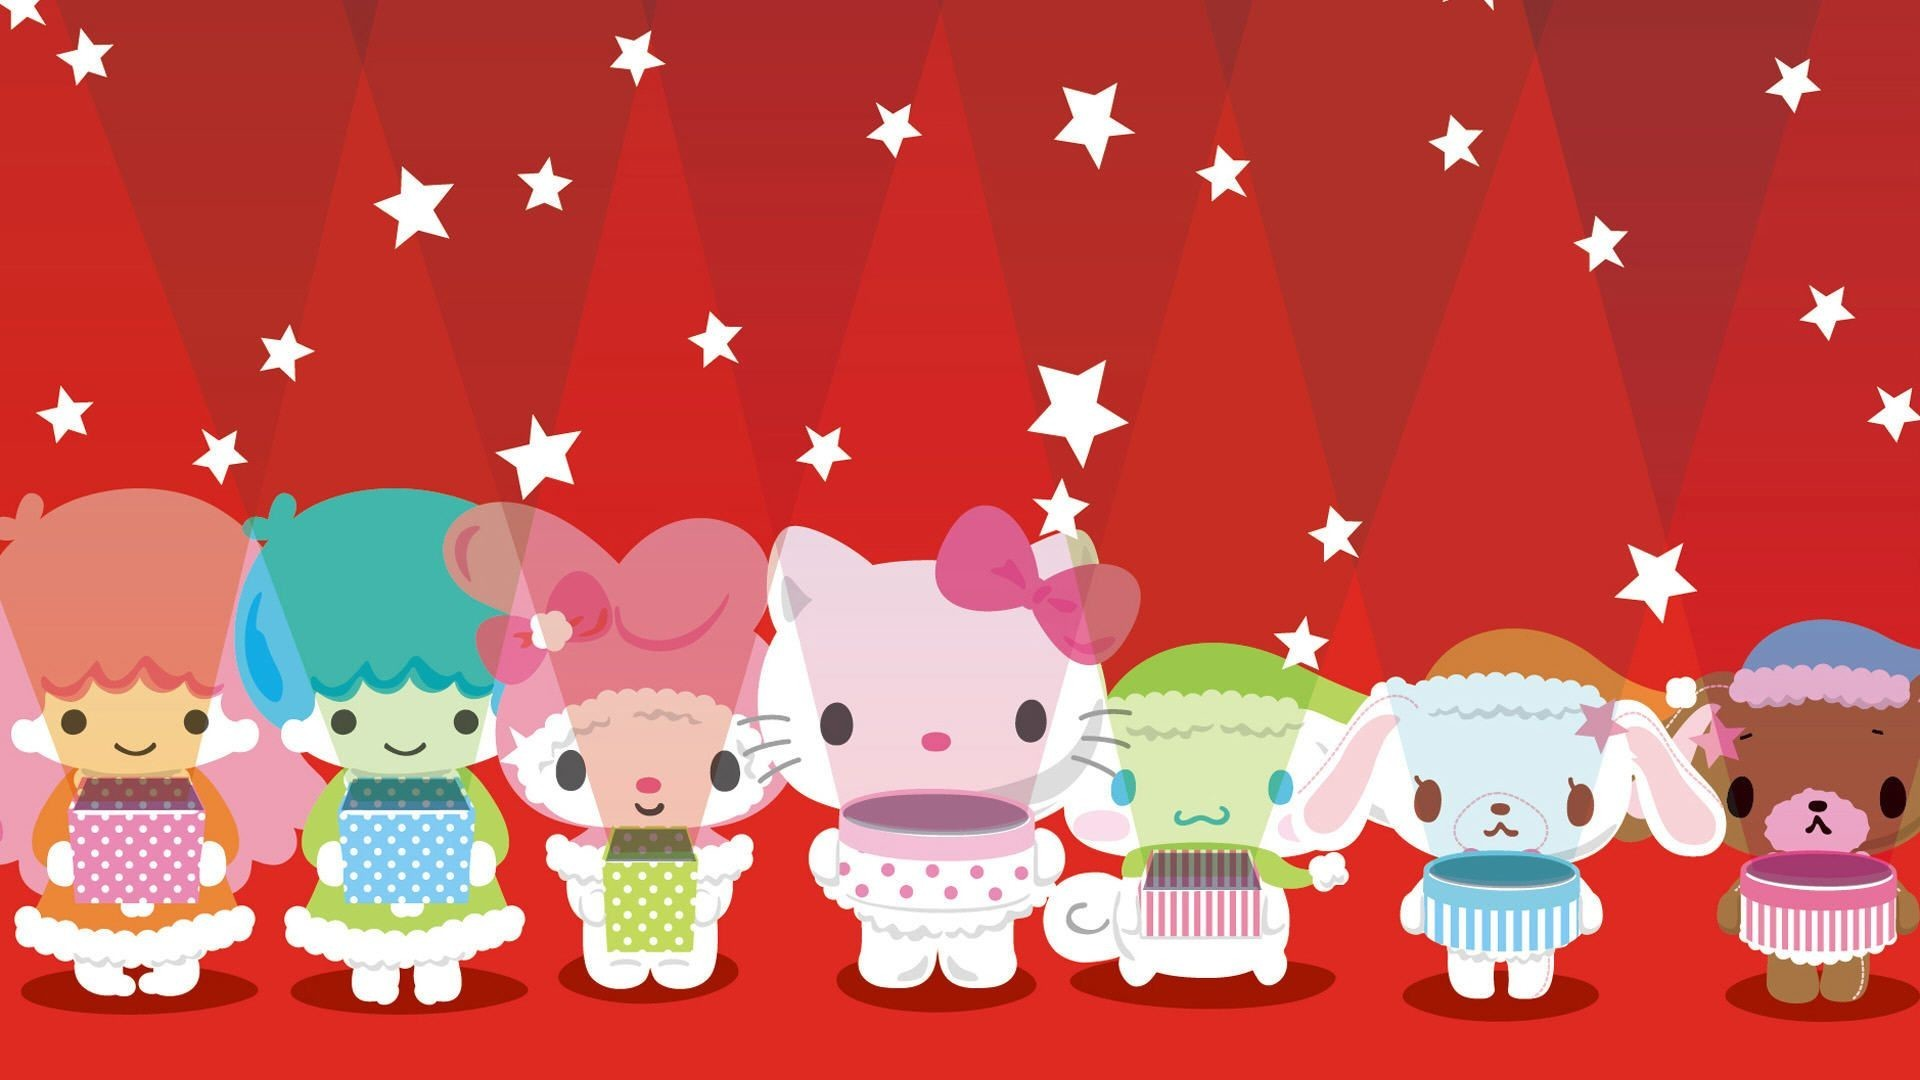 1920x1080 1152x2048 Pin by Patrice Aka Pepper on hello Kitty/wallpapers | Pinterest |  Wallpaper